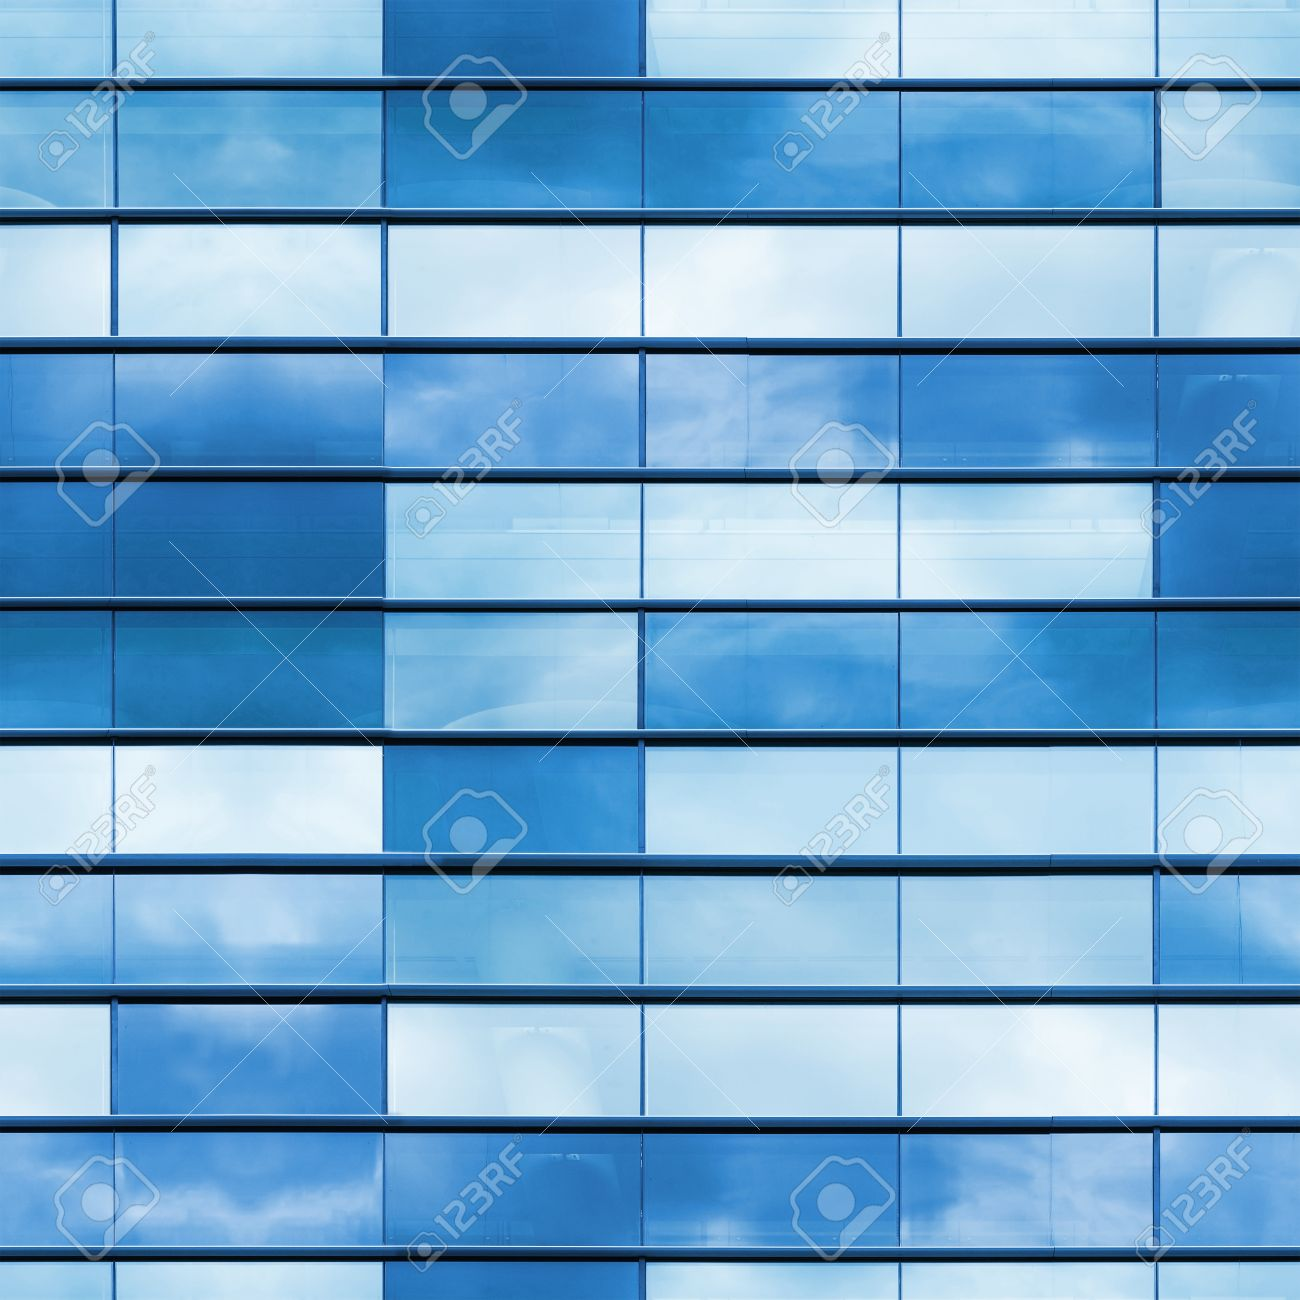 Glass facade texture  Modern Office Building Wall Made Of Blue Glass And Steel Frame ...